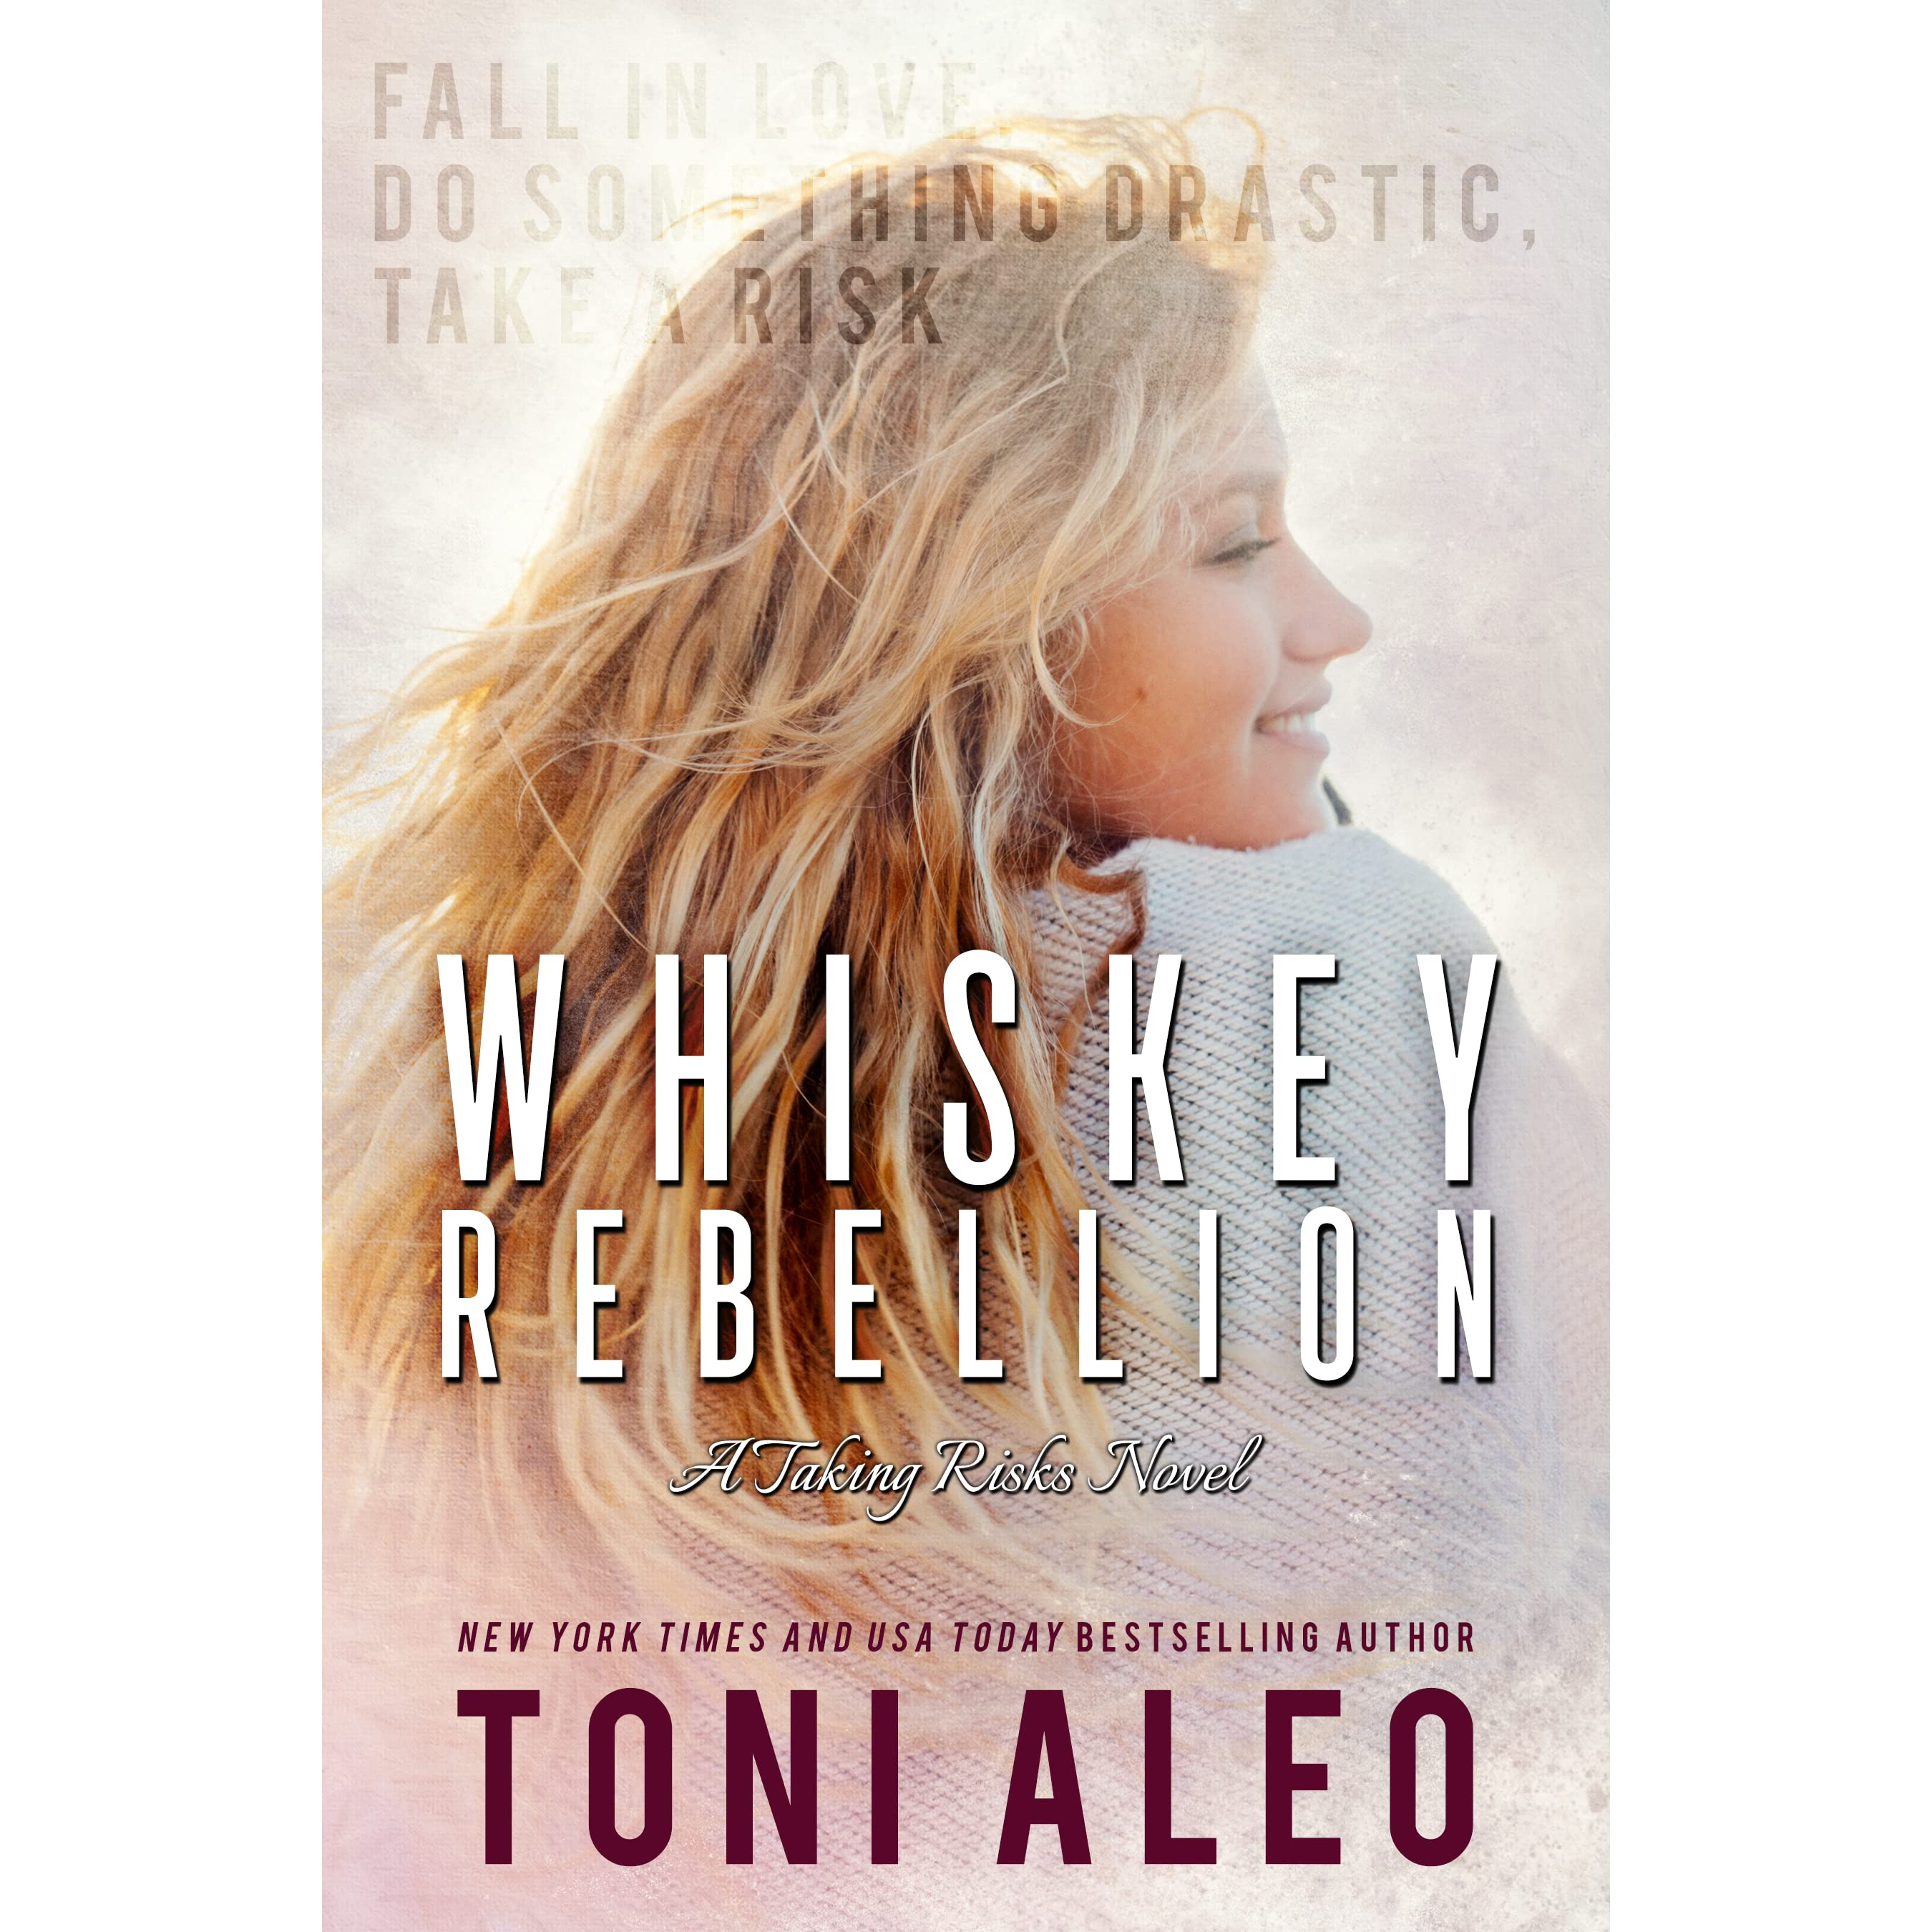 what does whiskey rebellion mean